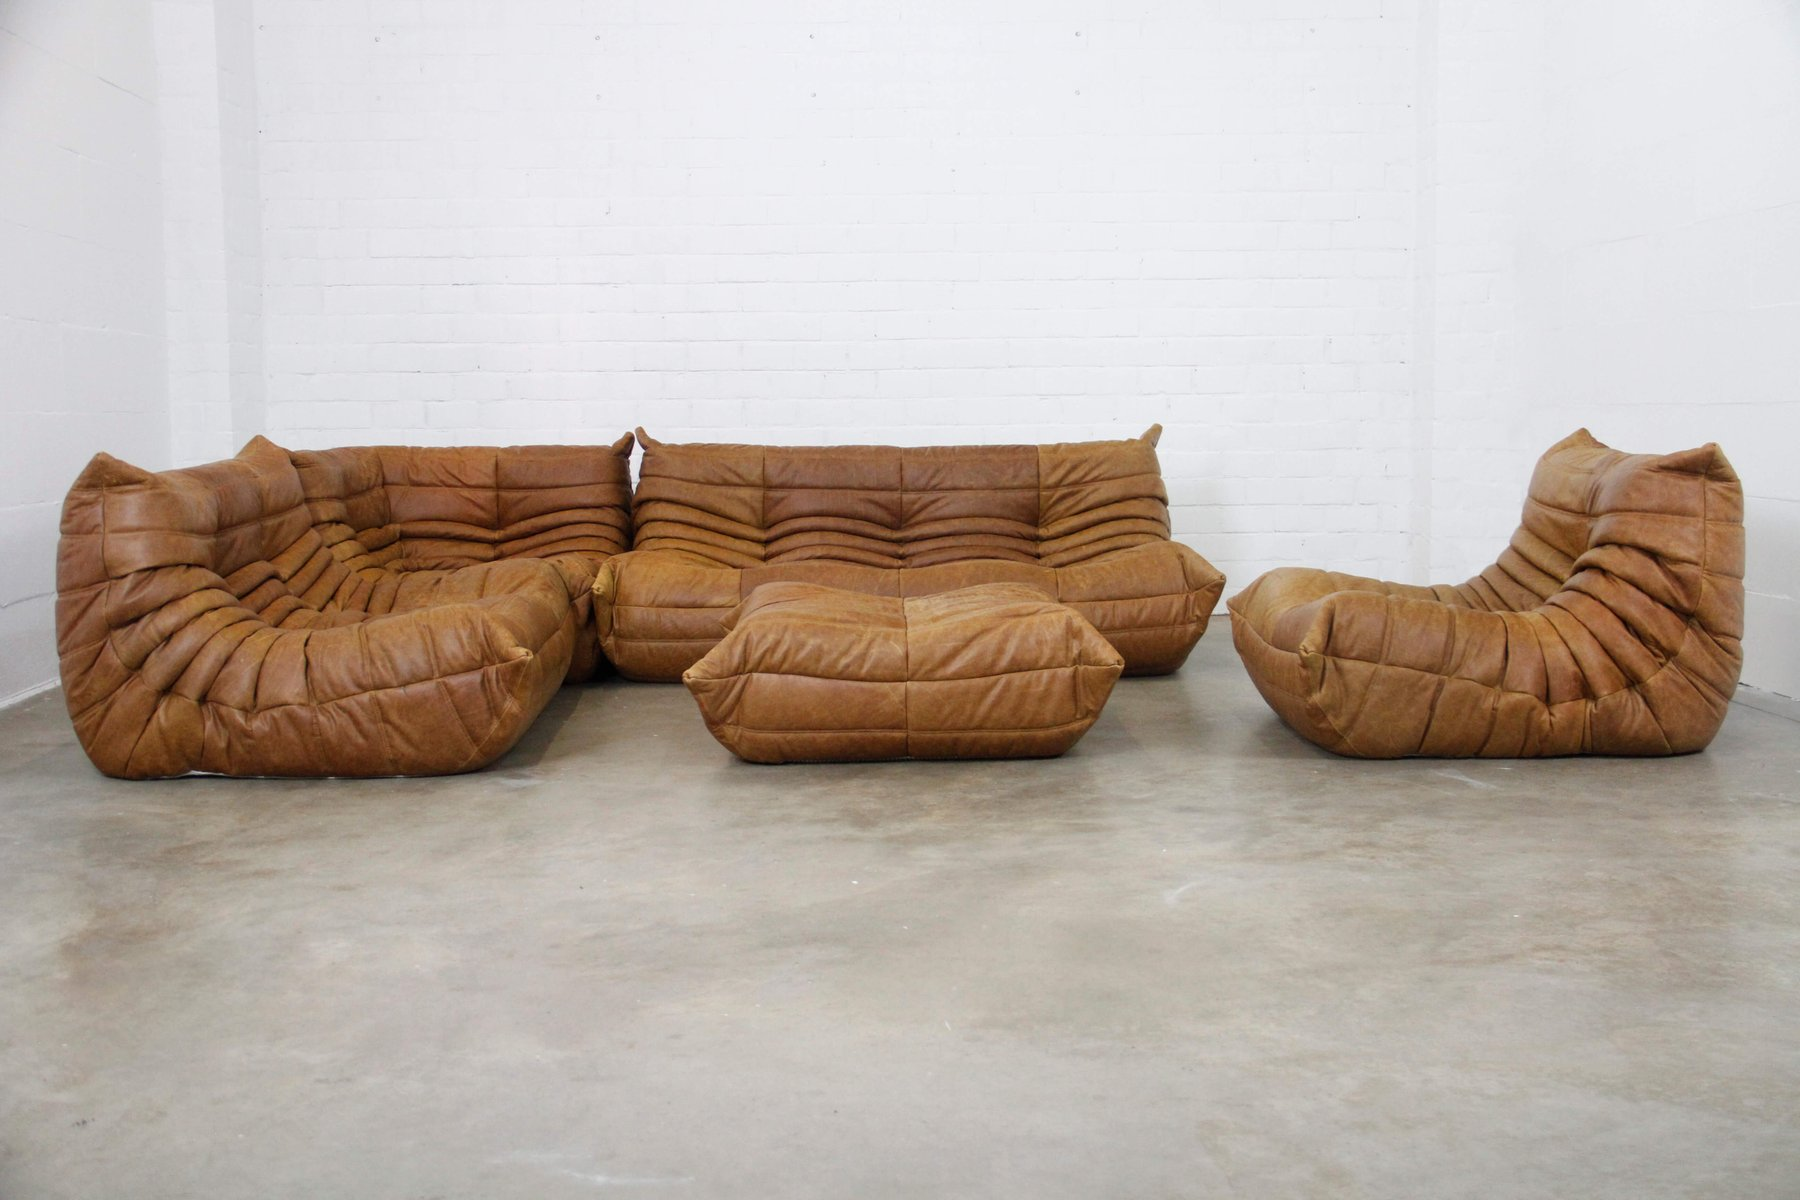 Ligne Roset Sofa Vintage Cognac Leather Togo Modular Sofa Set By Michel Ducaroy For Ligne Roset